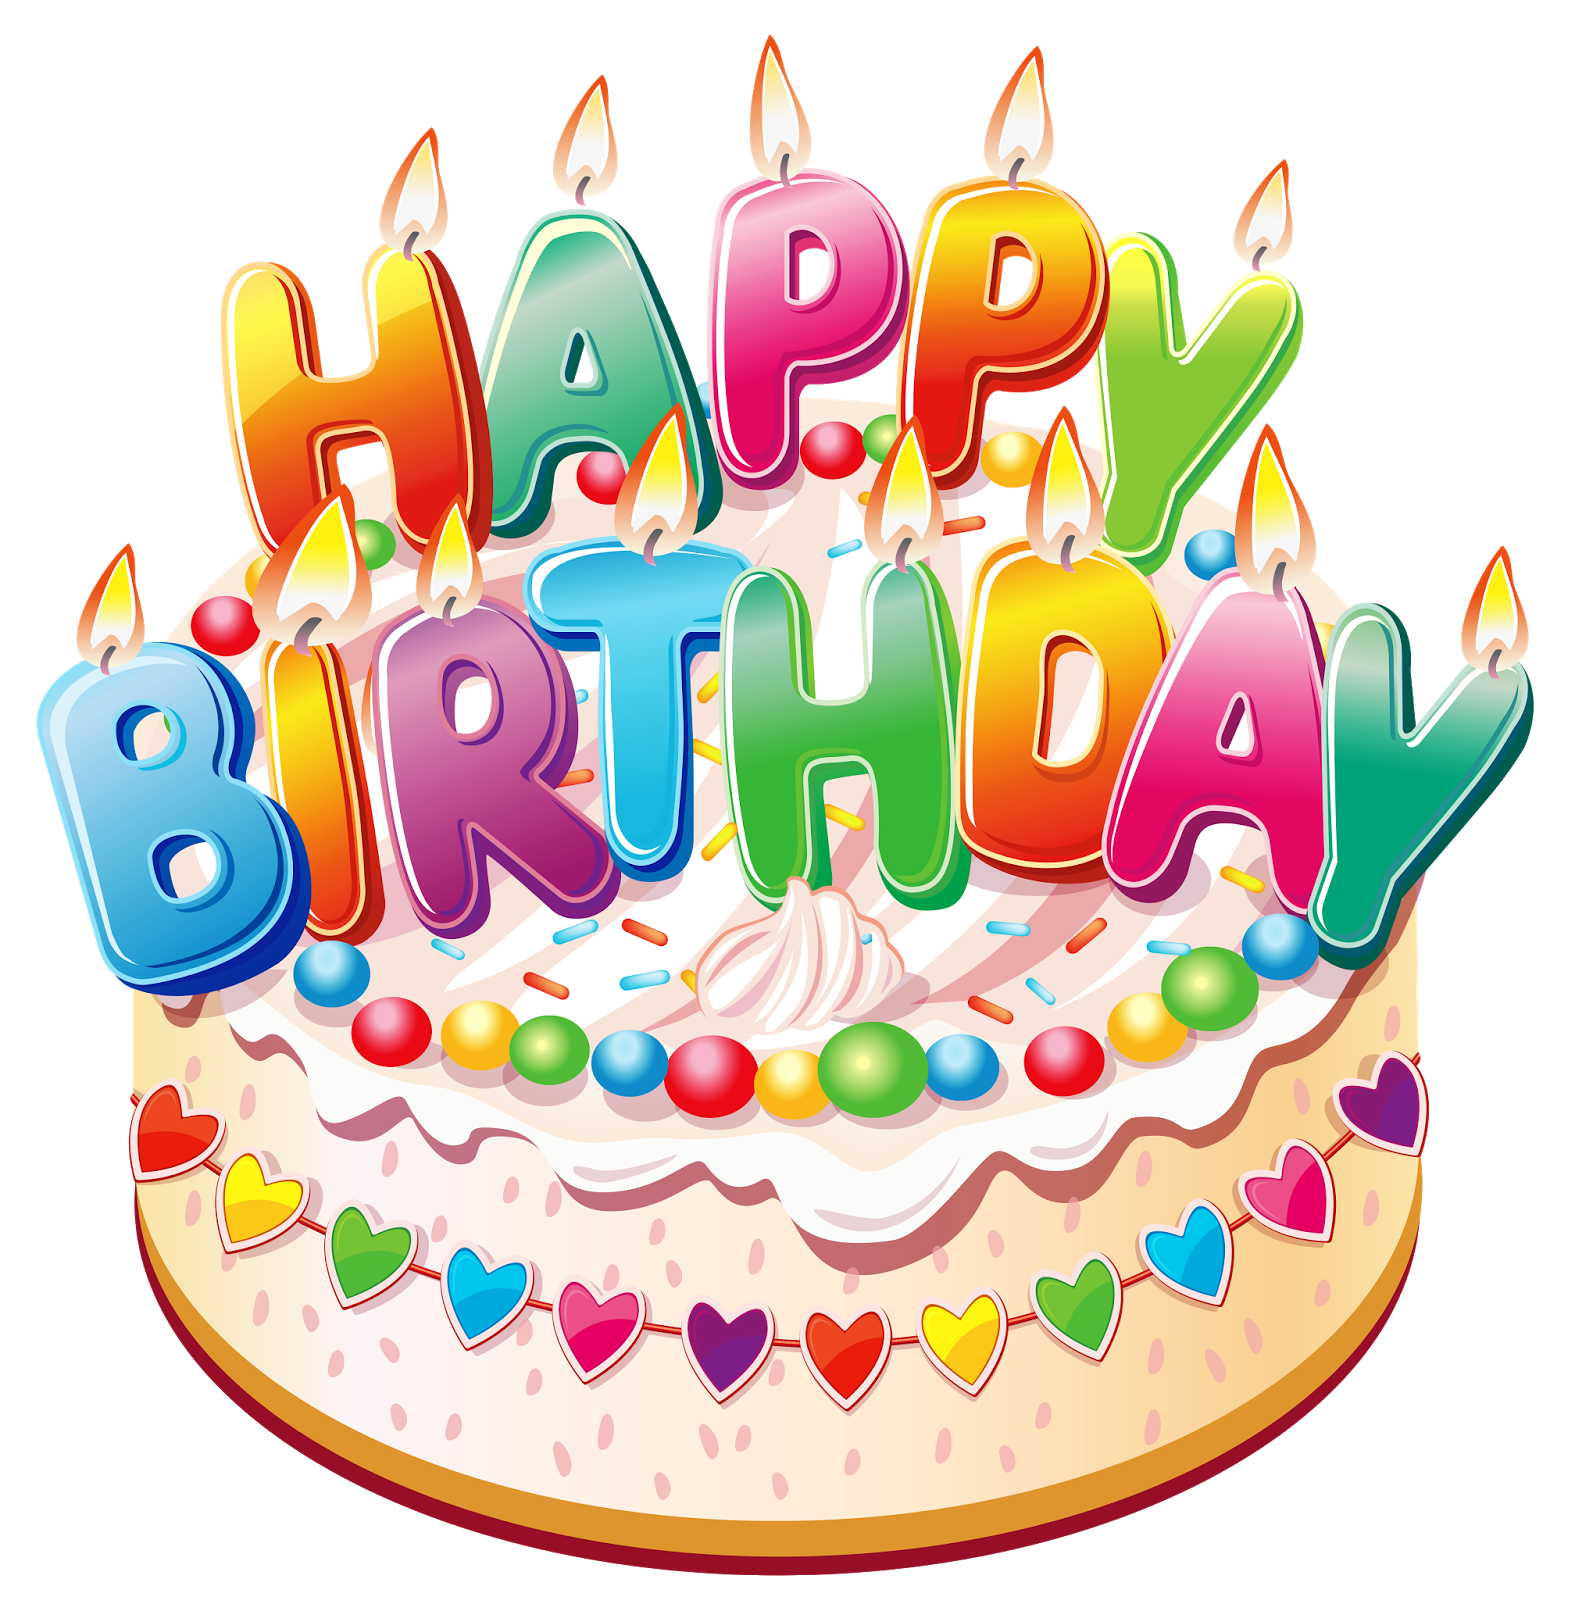 banner transparent download A jewish minute twice. Happy birthday to me clipart